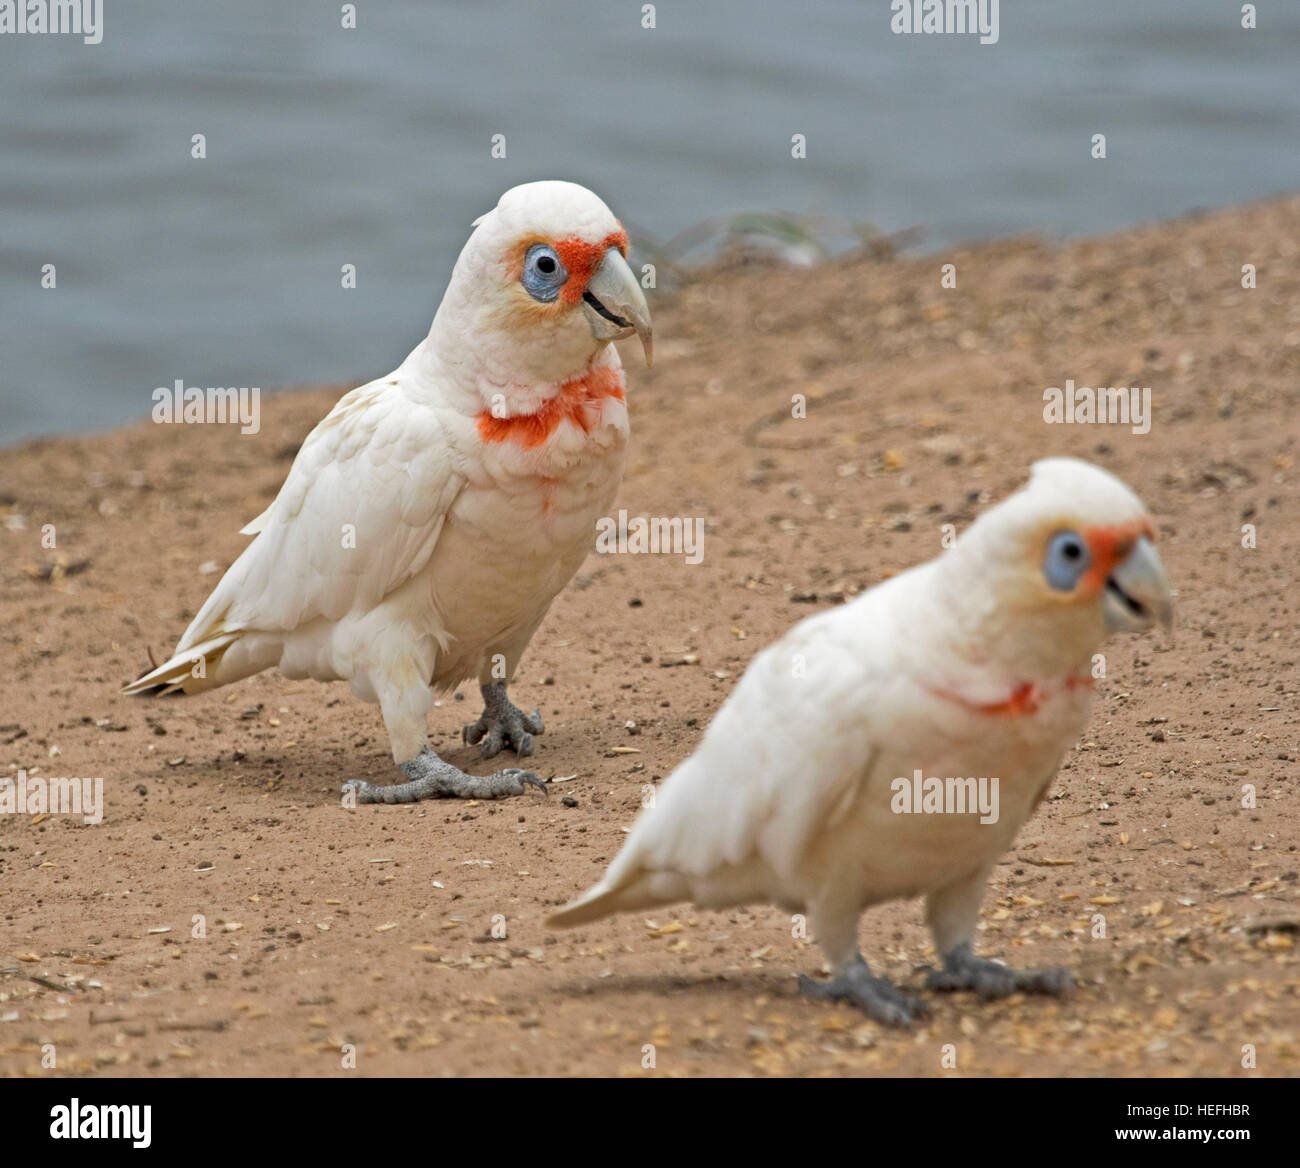 Pair of Australian long-billed corellas, Cacatua tenuirostris white cockatoos with splashes of red on plumage, in - Stock Image